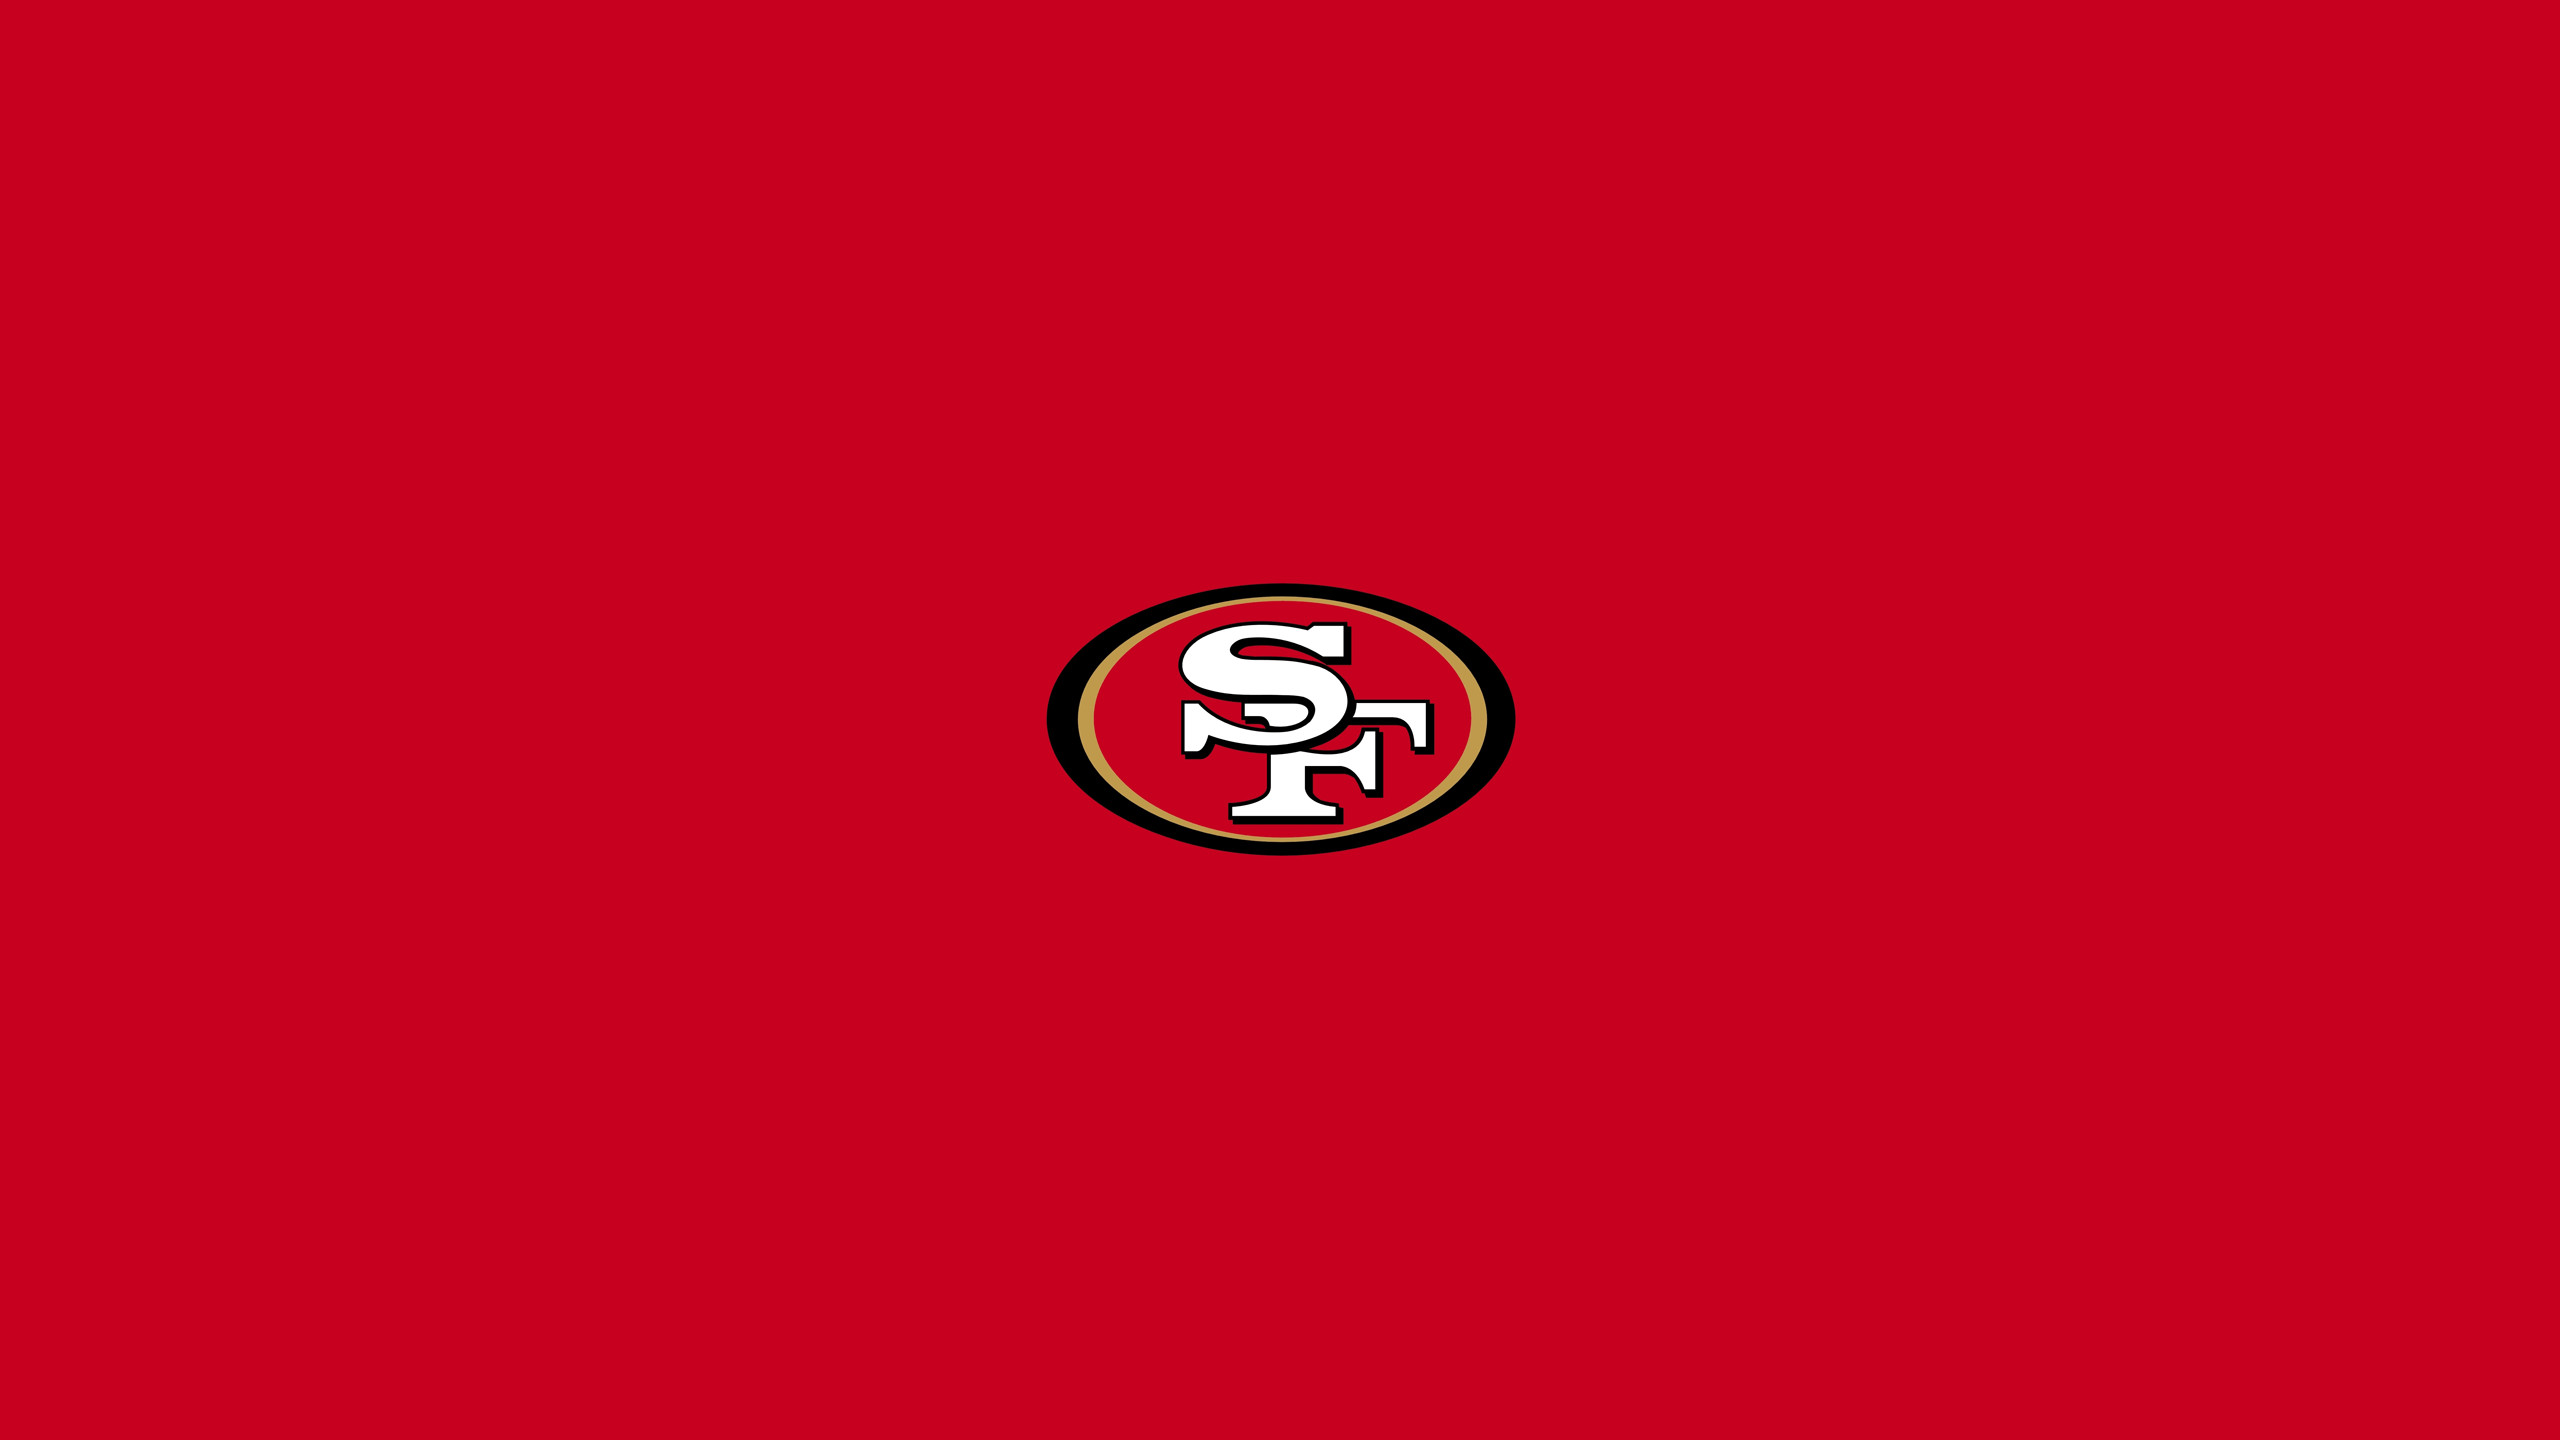 49ers wallpapers your phone 67 images 2560x1440 san francisco 49ers hd wallpapers hd wallpapers inn voltagebd Choice Image